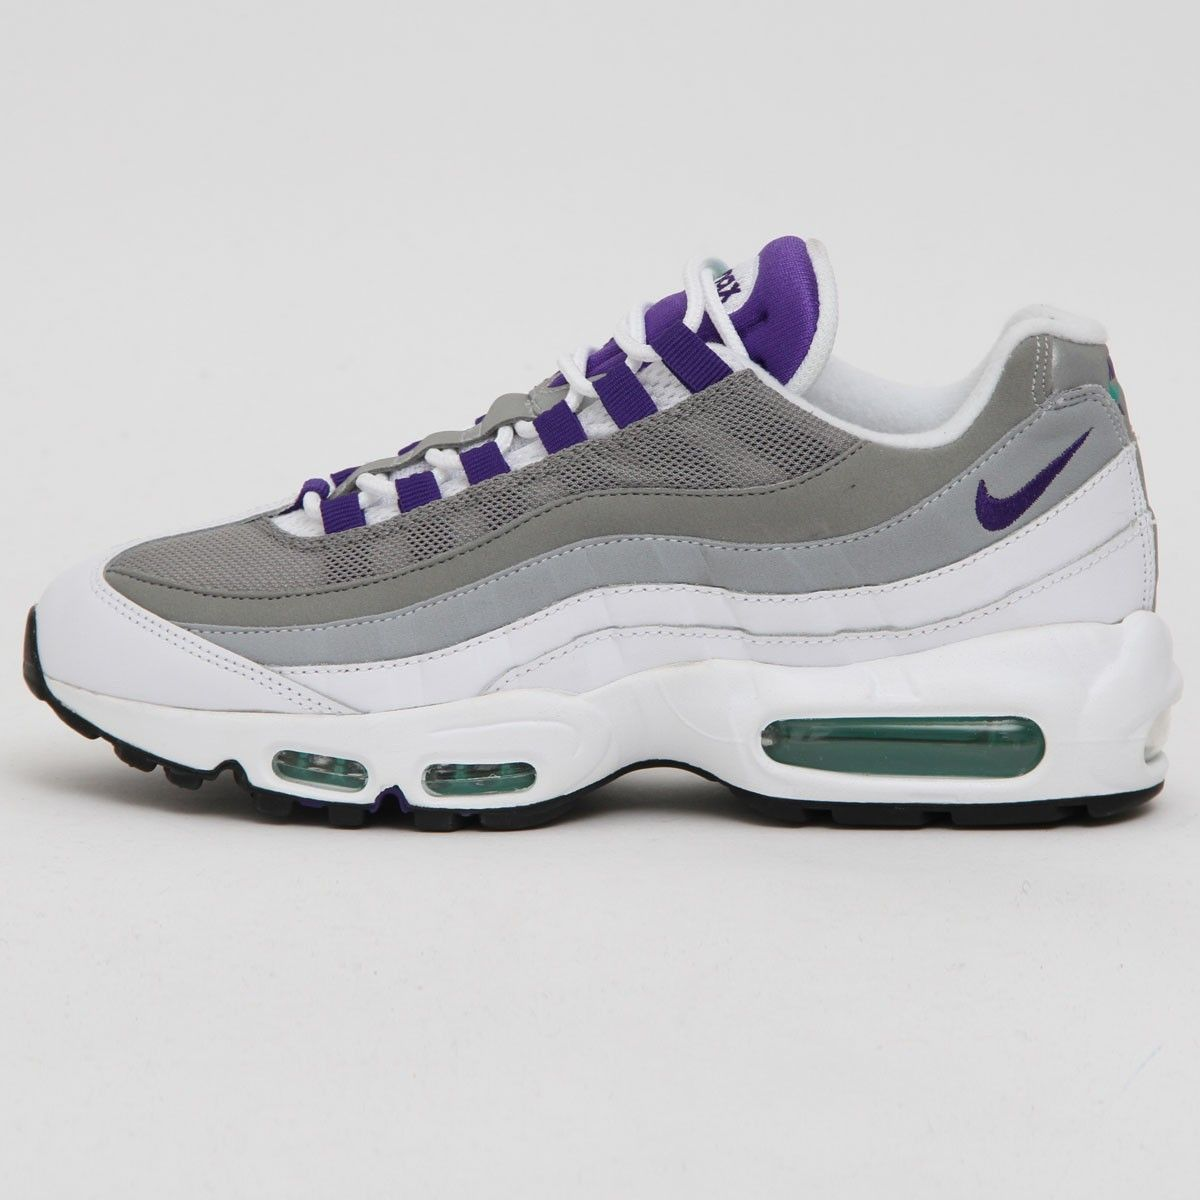 wholesale dealer 77fc0 6fb8e Nike Air Max 95 OG   Grape . 2015. 554970-151.